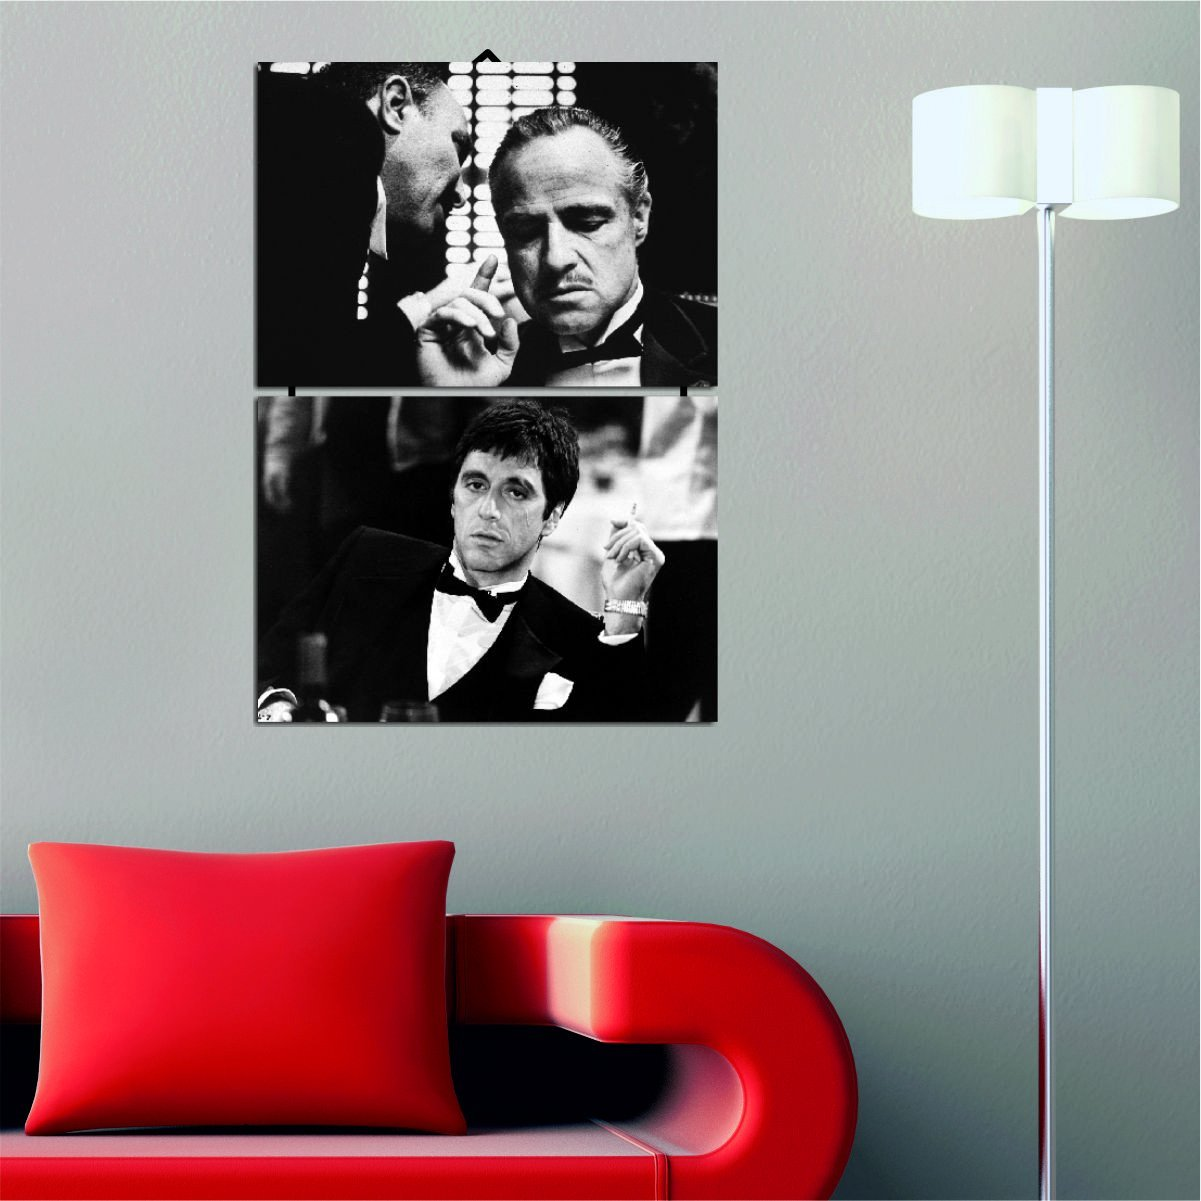 Movies MDF Wall Art - Godfather and Scarface, Mafia, Black and White, Actor - Ready to Hang Painting, Total Size (14'' x 20'') - 2 Panels with Rope Connection - Wall Hanging for Living Room, Bedroom